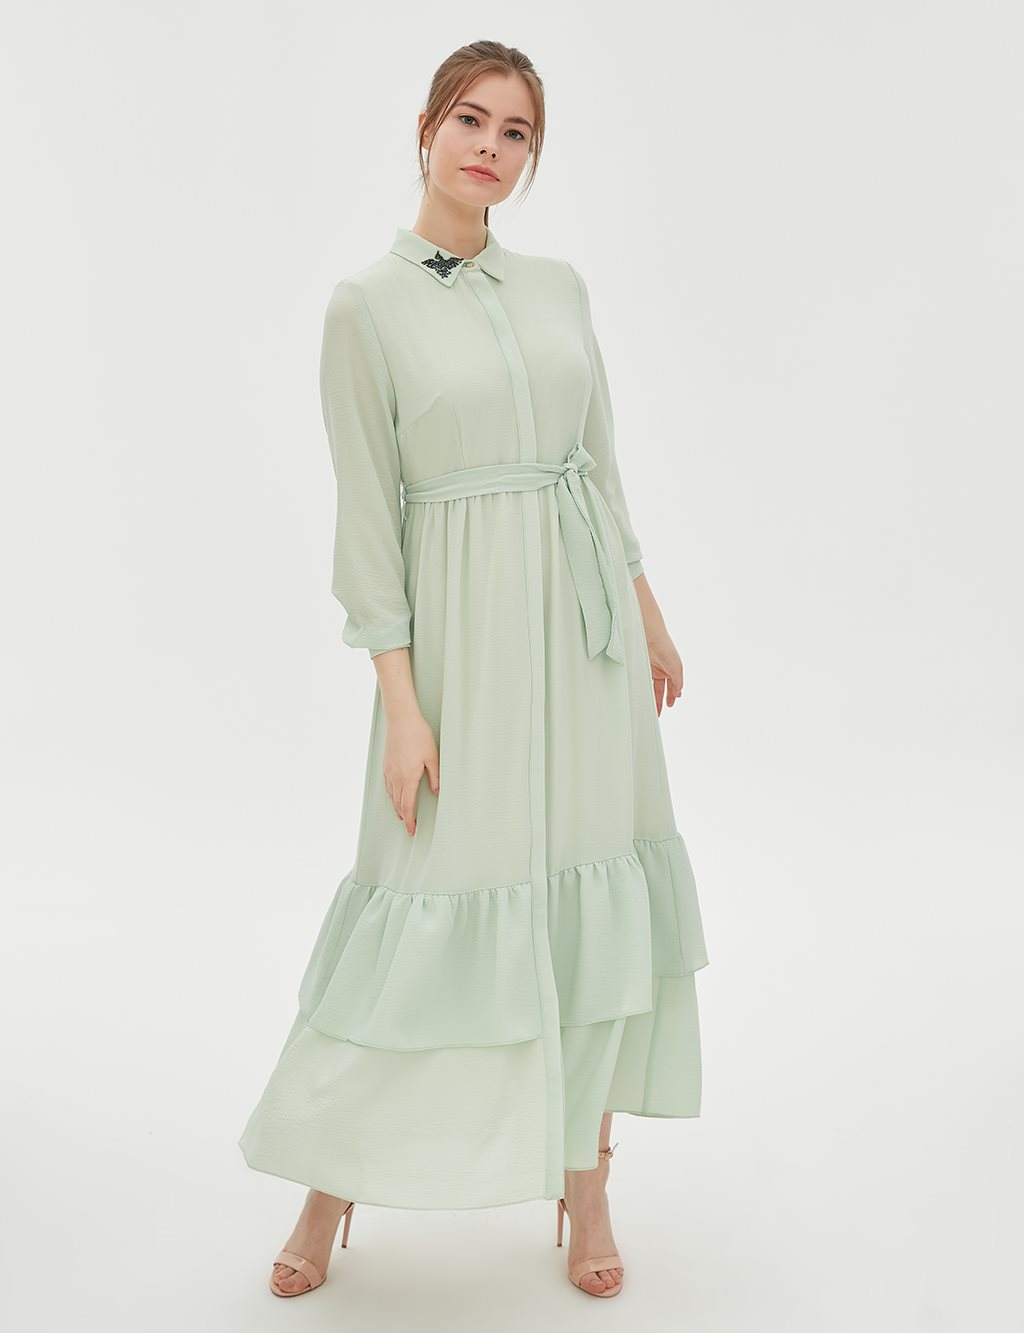 Butterfly Detailed Dress B20 23100 Water Green